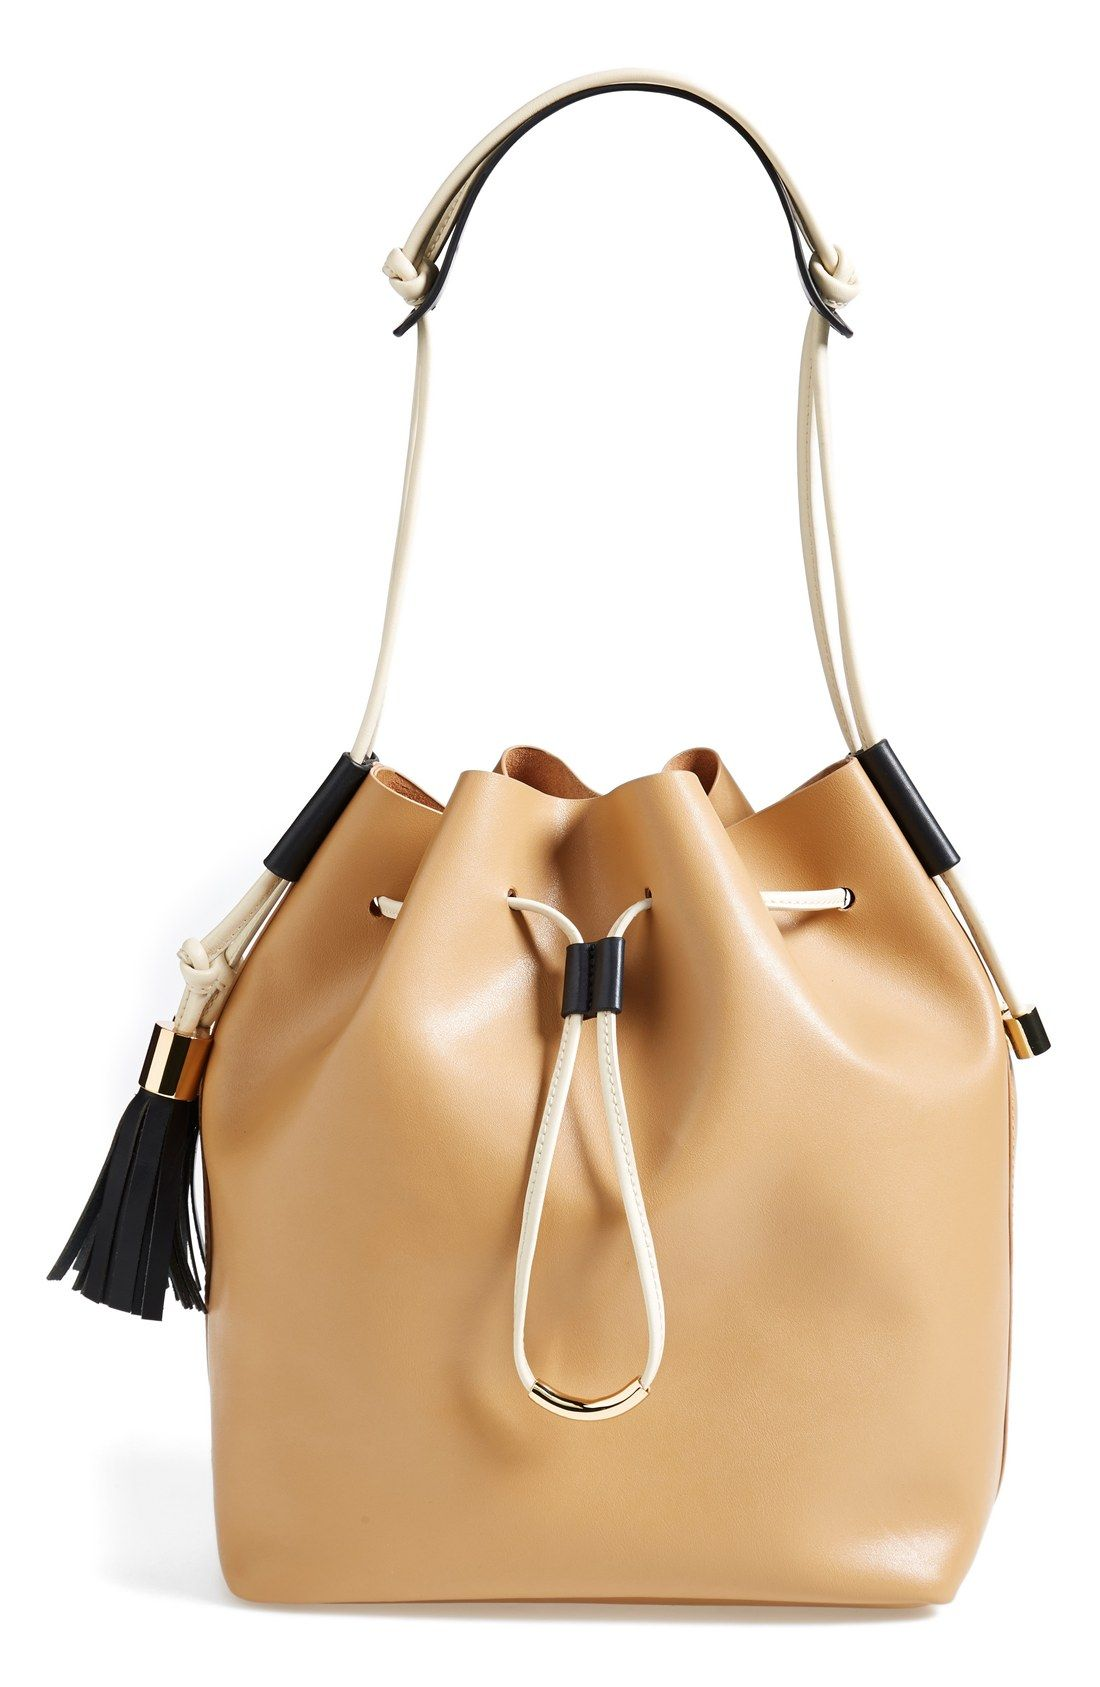 Cheap michael kors handbags · Adding this gorgeous drawstring tote to the  wishlist. ae657ba635